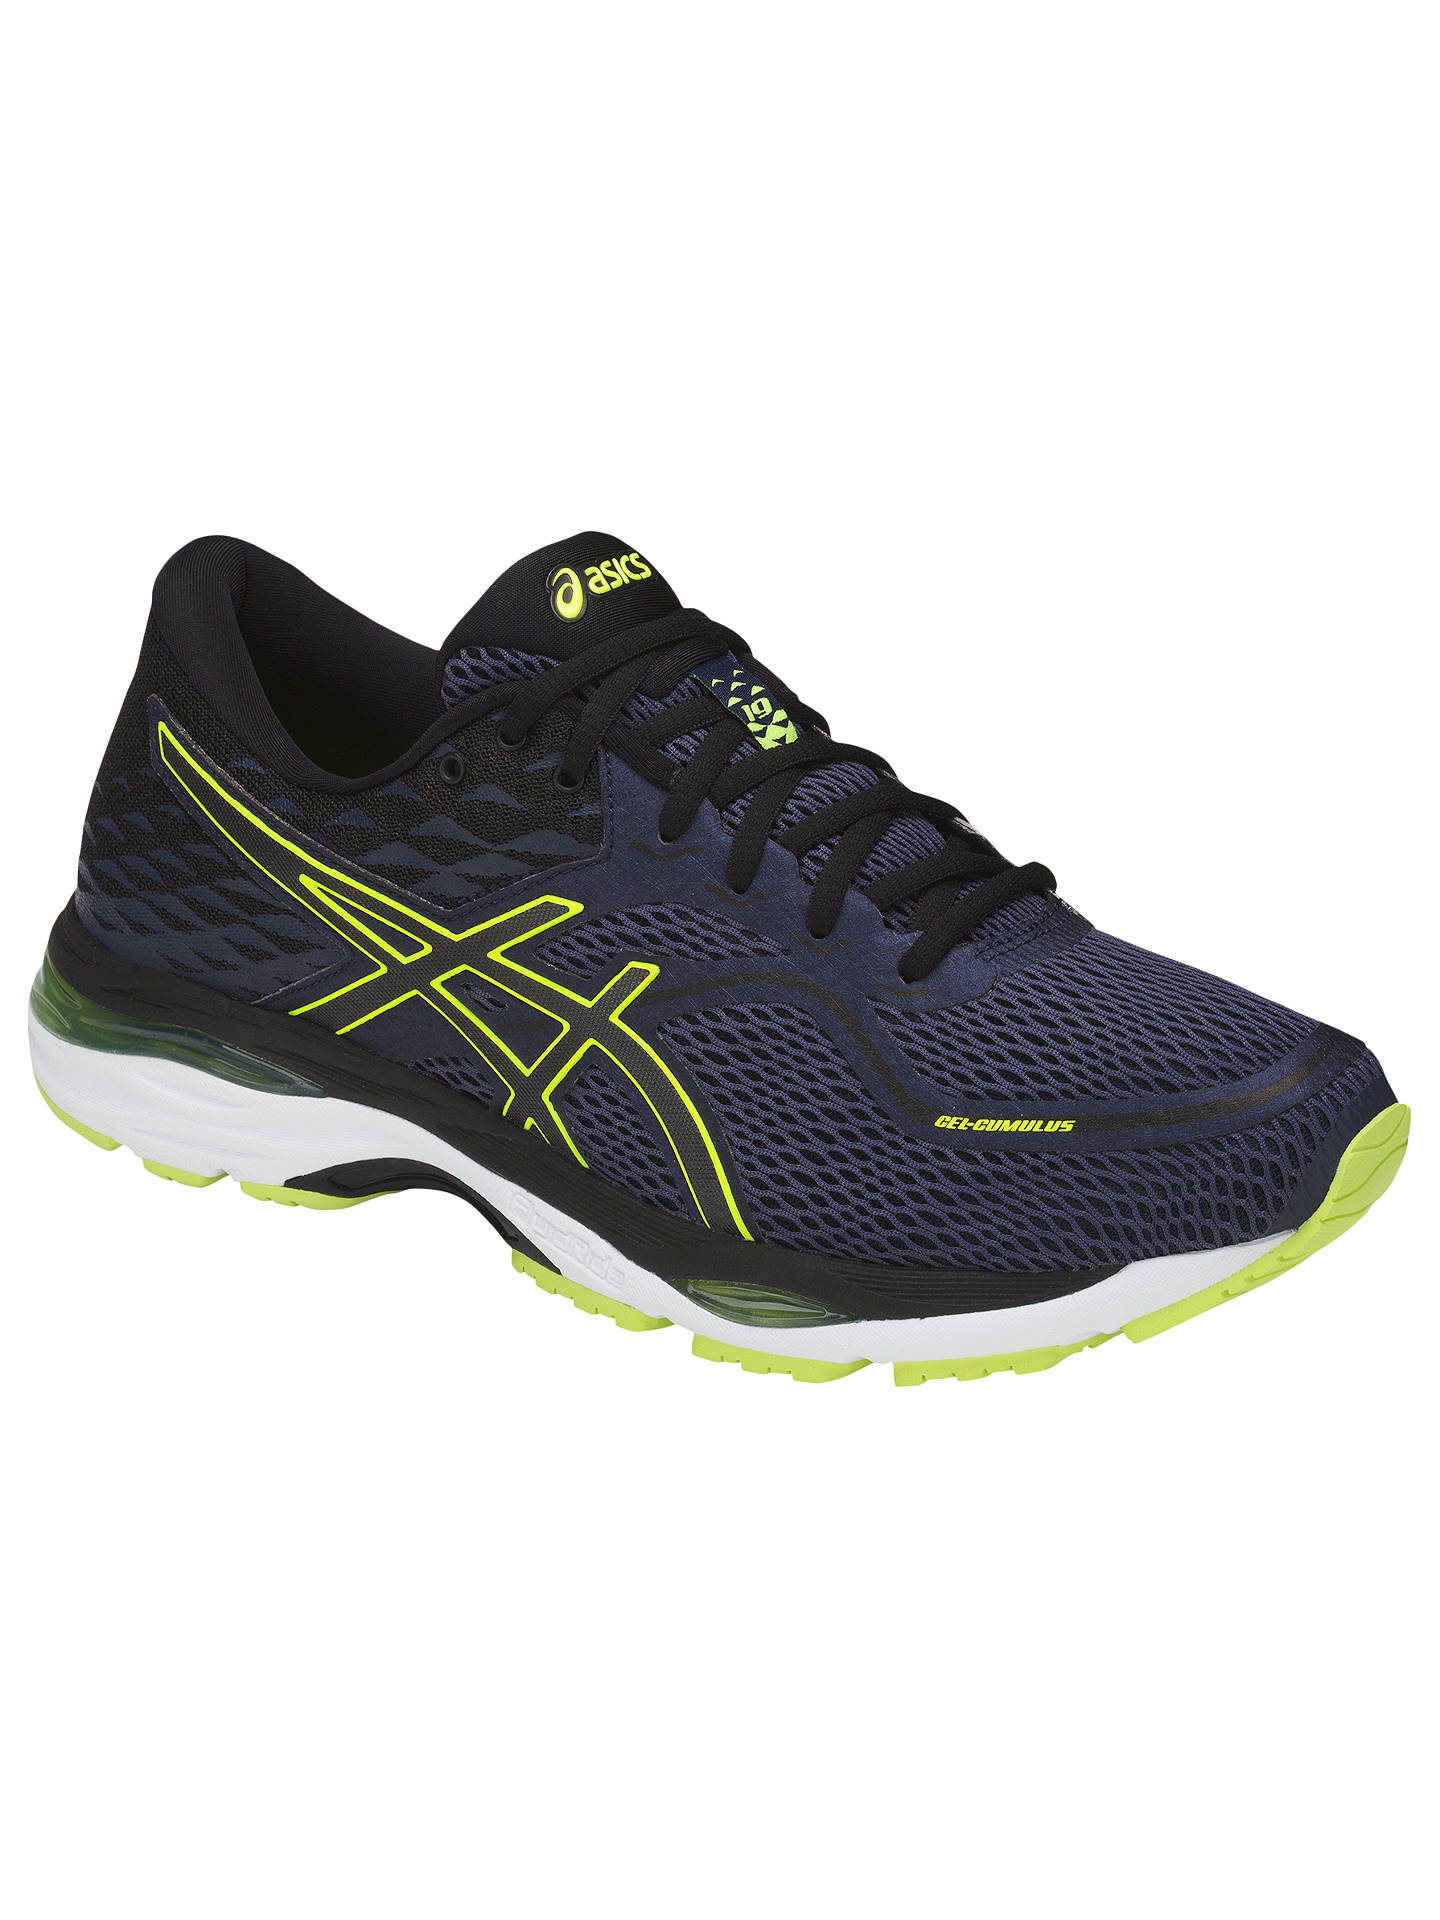 f999c1552 Buy Asics GEL-CUMULUS 19 Men's Running Shoes, Black/Indigo Blue/Safety ...